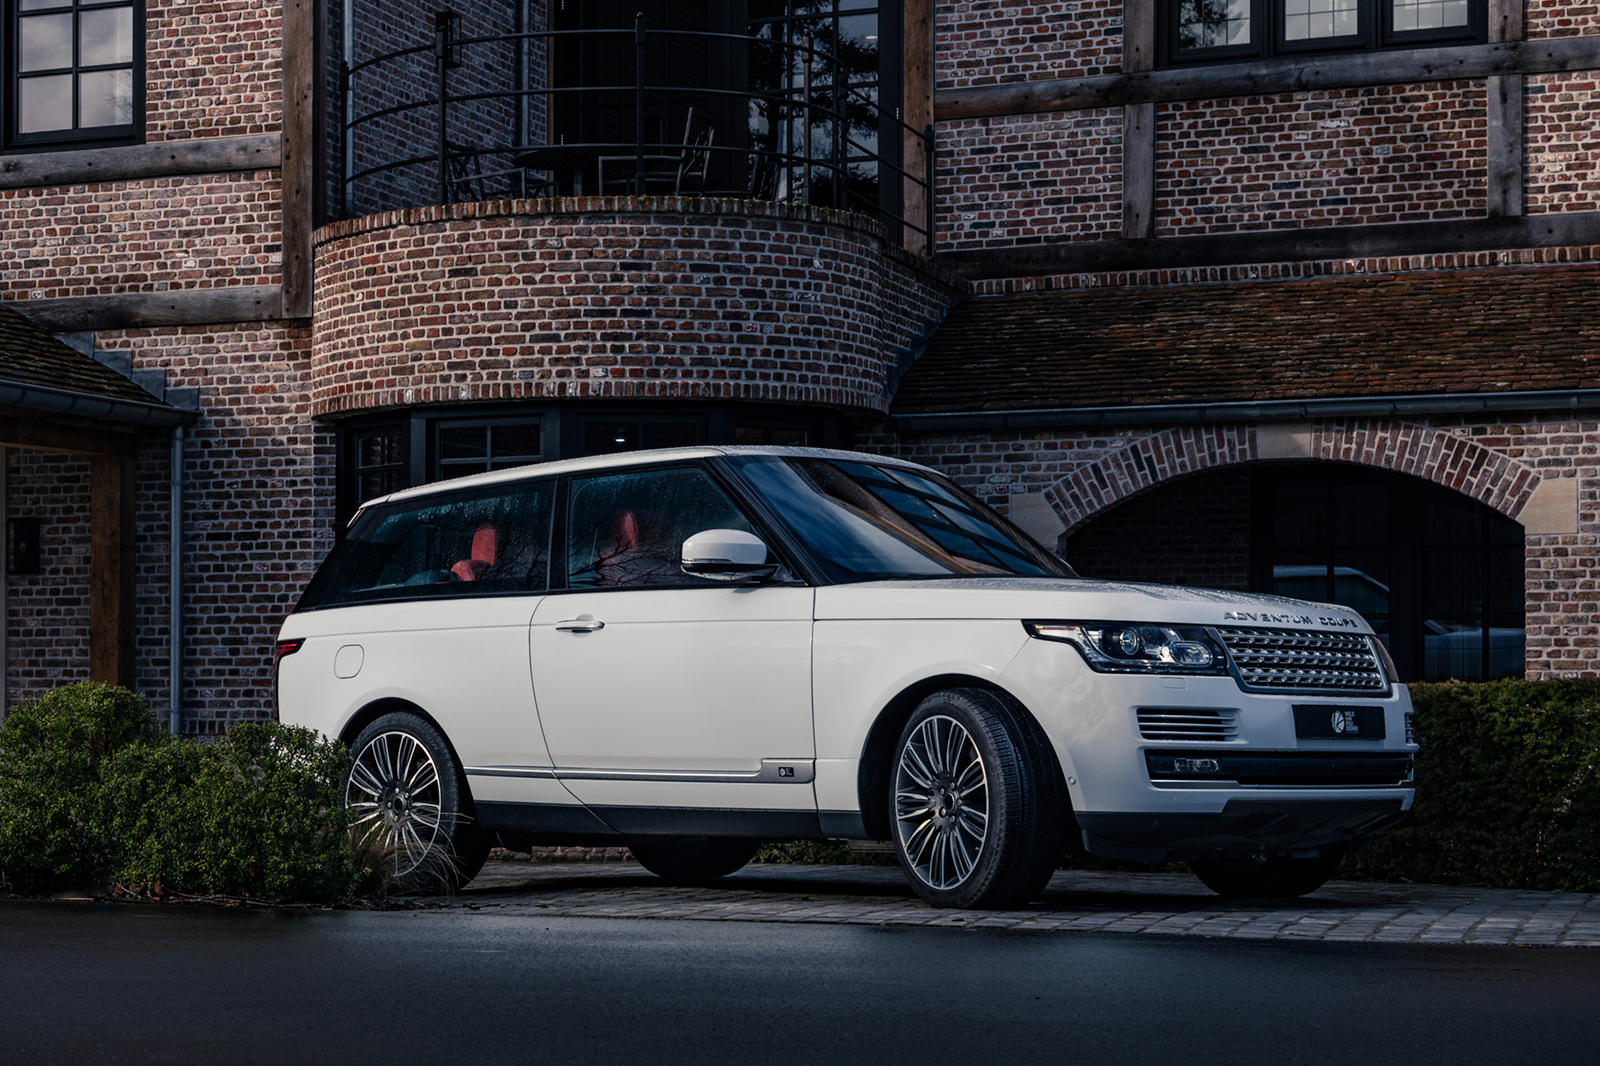 London-based Niels van Roij Design has announced the forthcoming production launch of the Adventum Coupe, an extensive Range Rover conversion with only three doors.